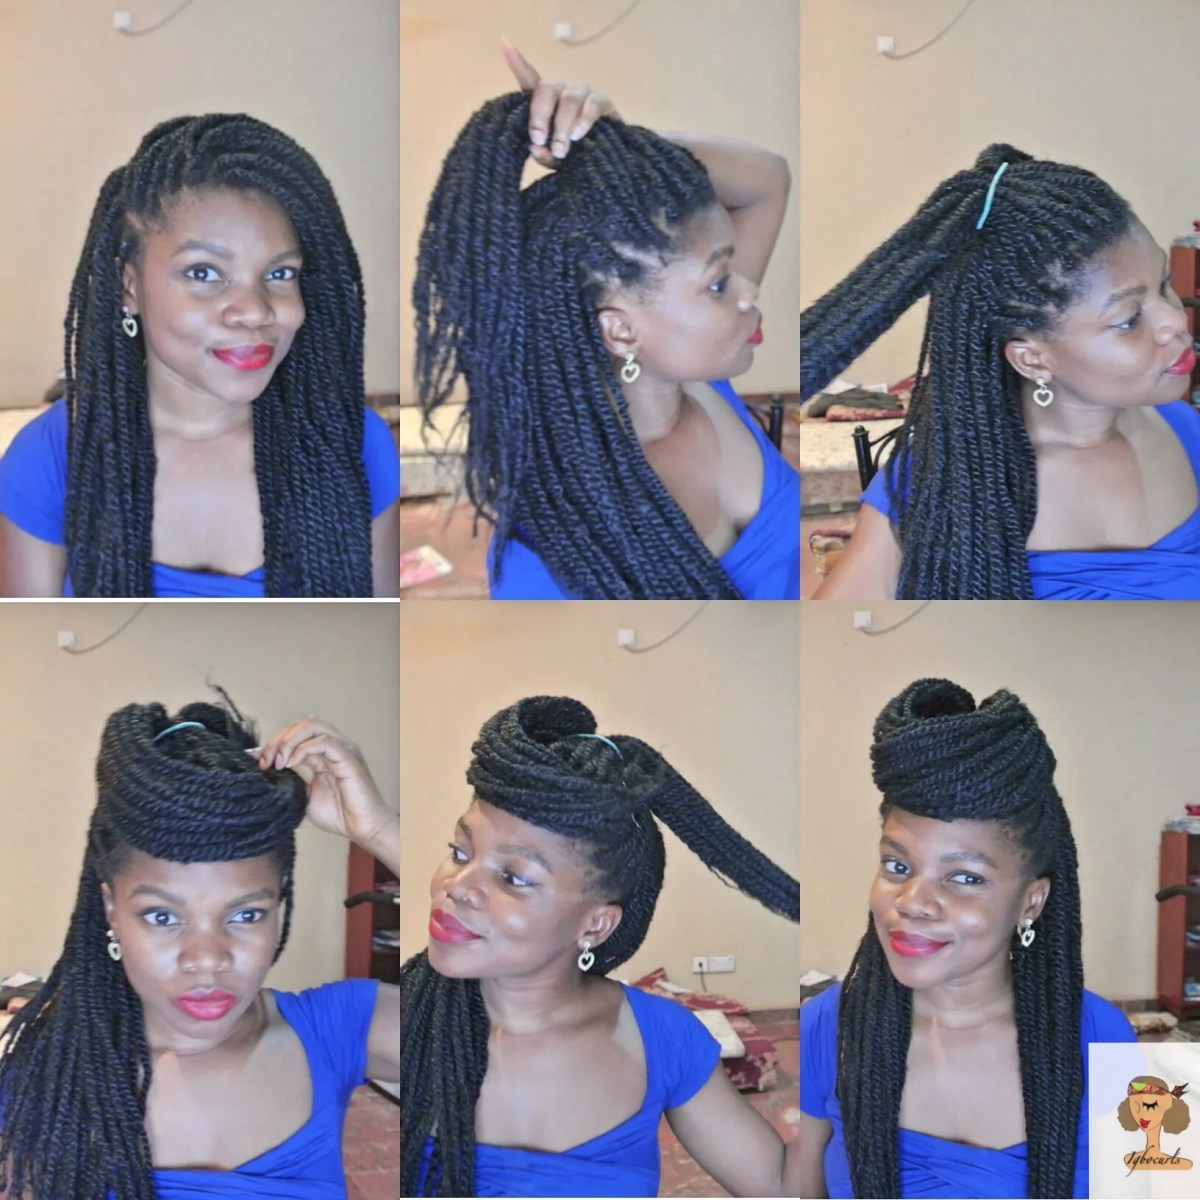 4 Stylish ways to wear your Braids or Twists (Protective Style)